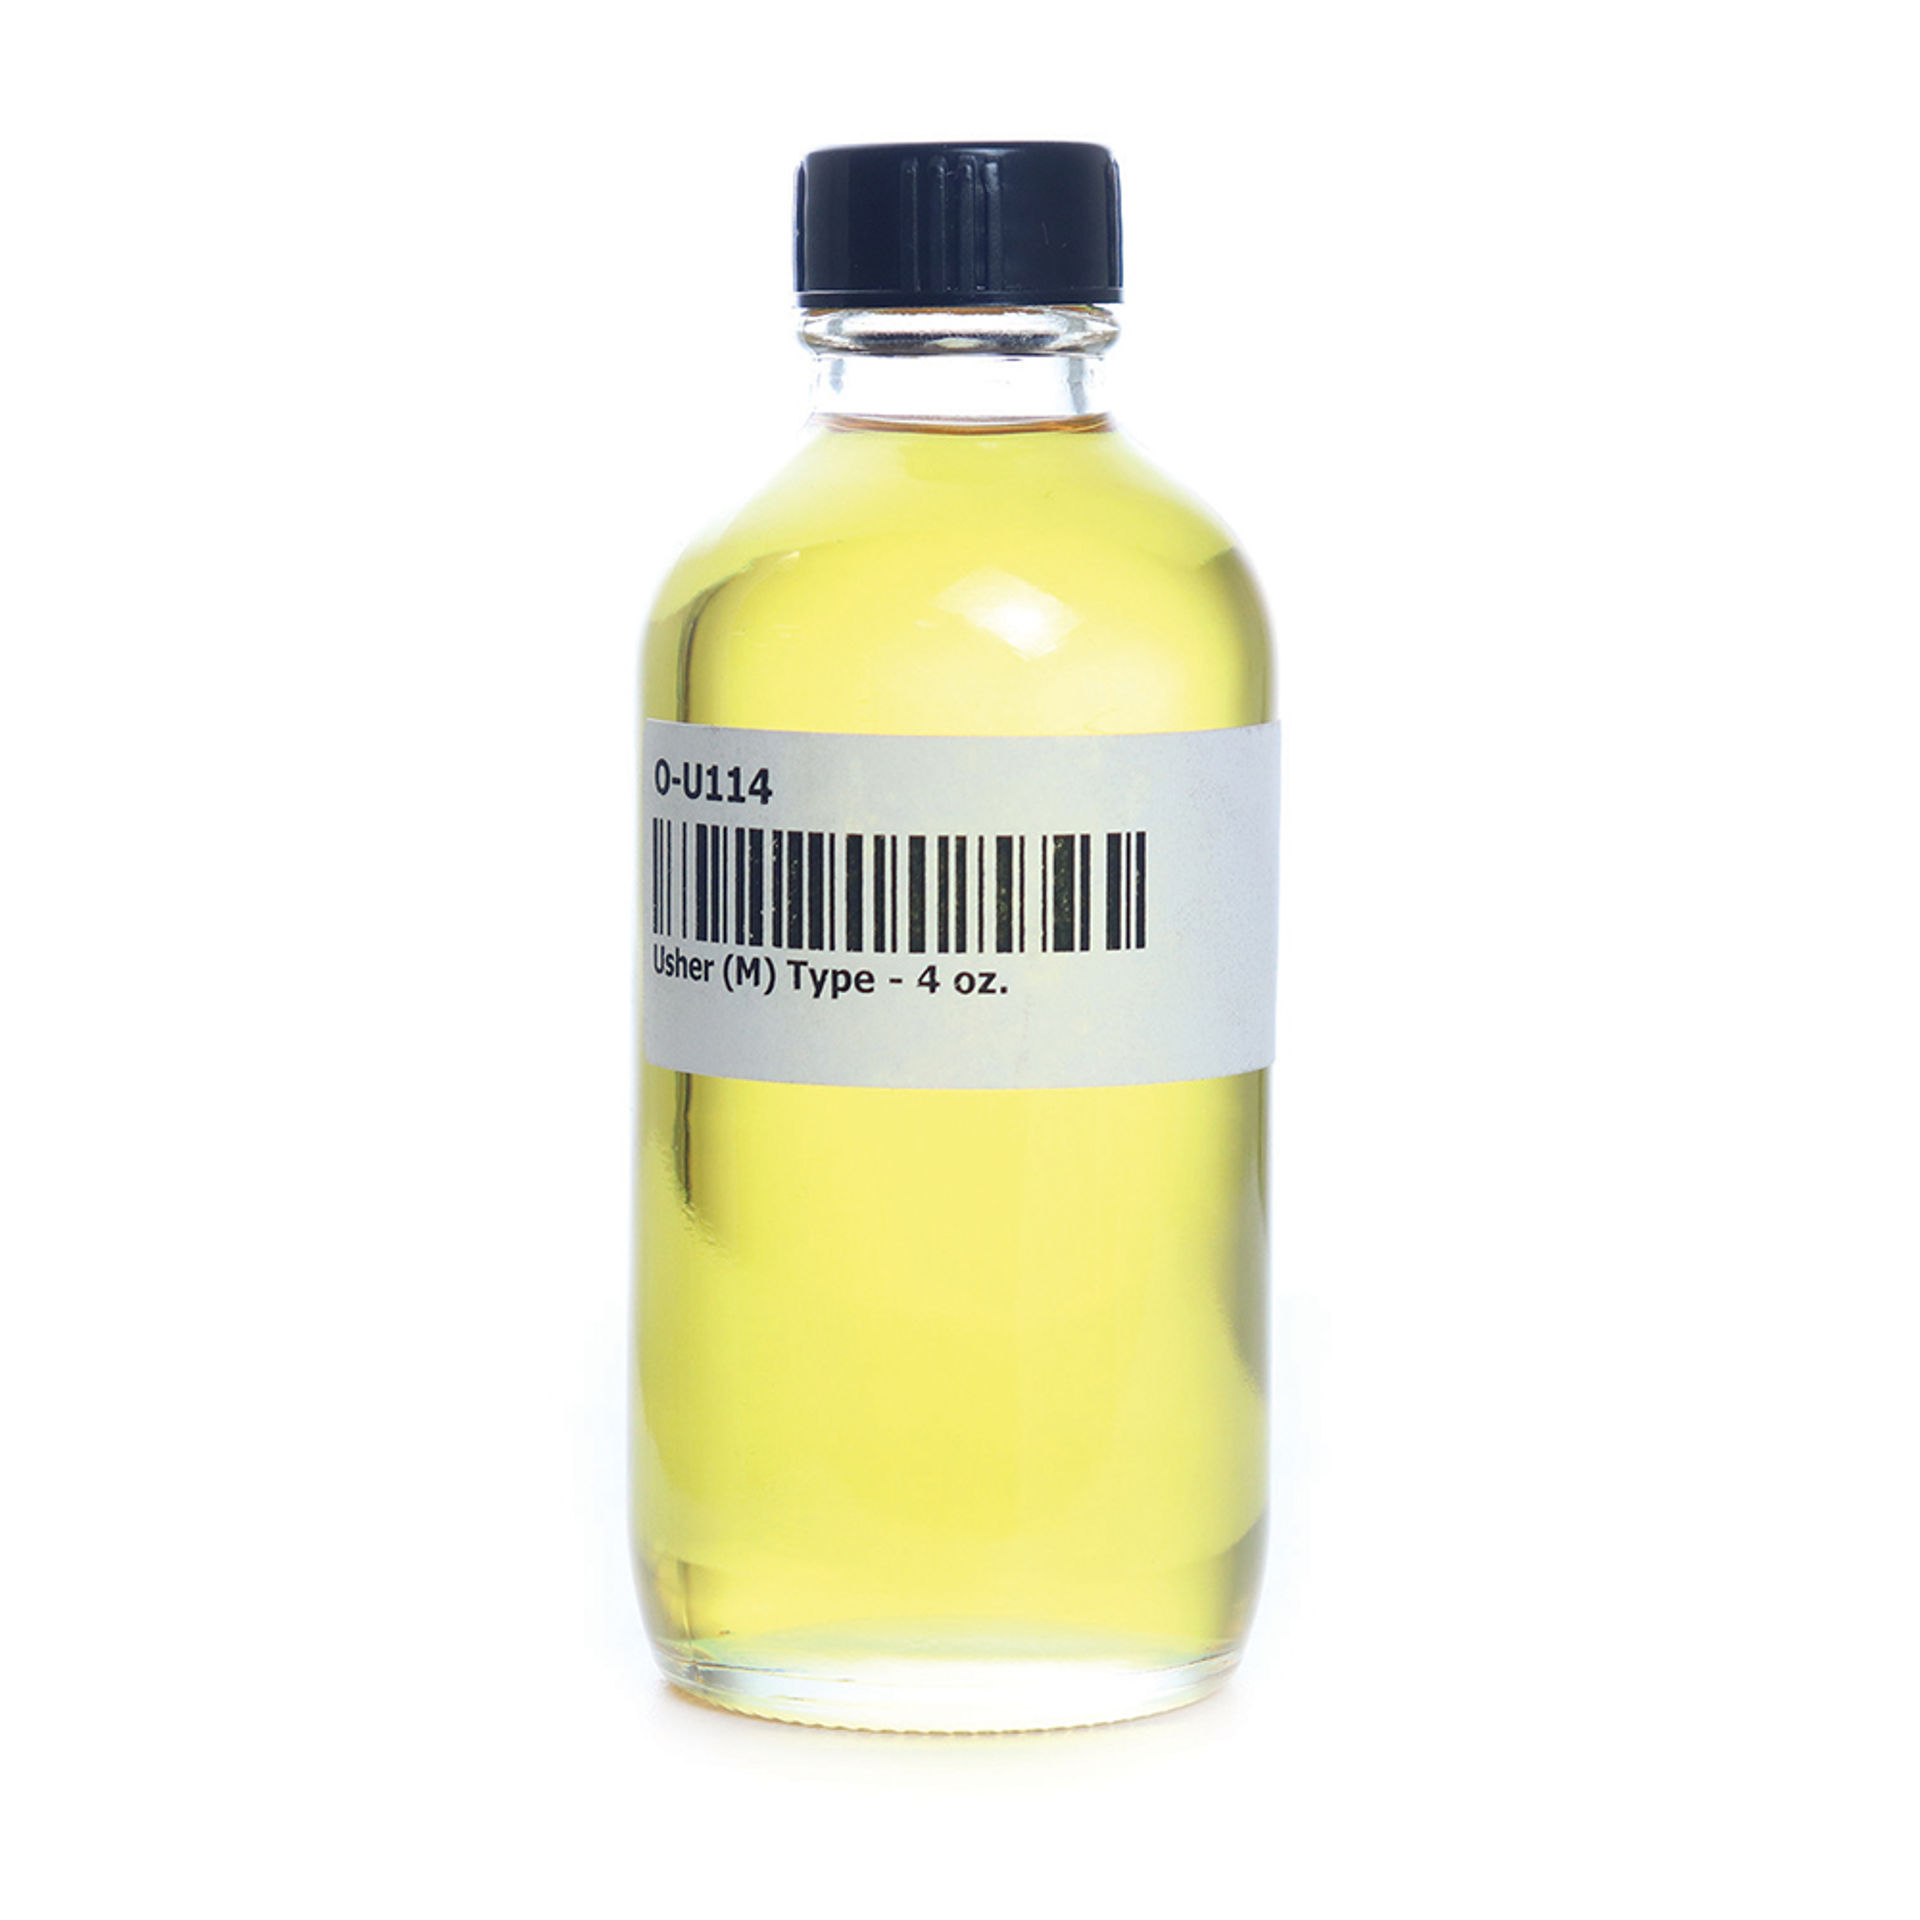 Picture of Usher (M) Type - 4 oz.